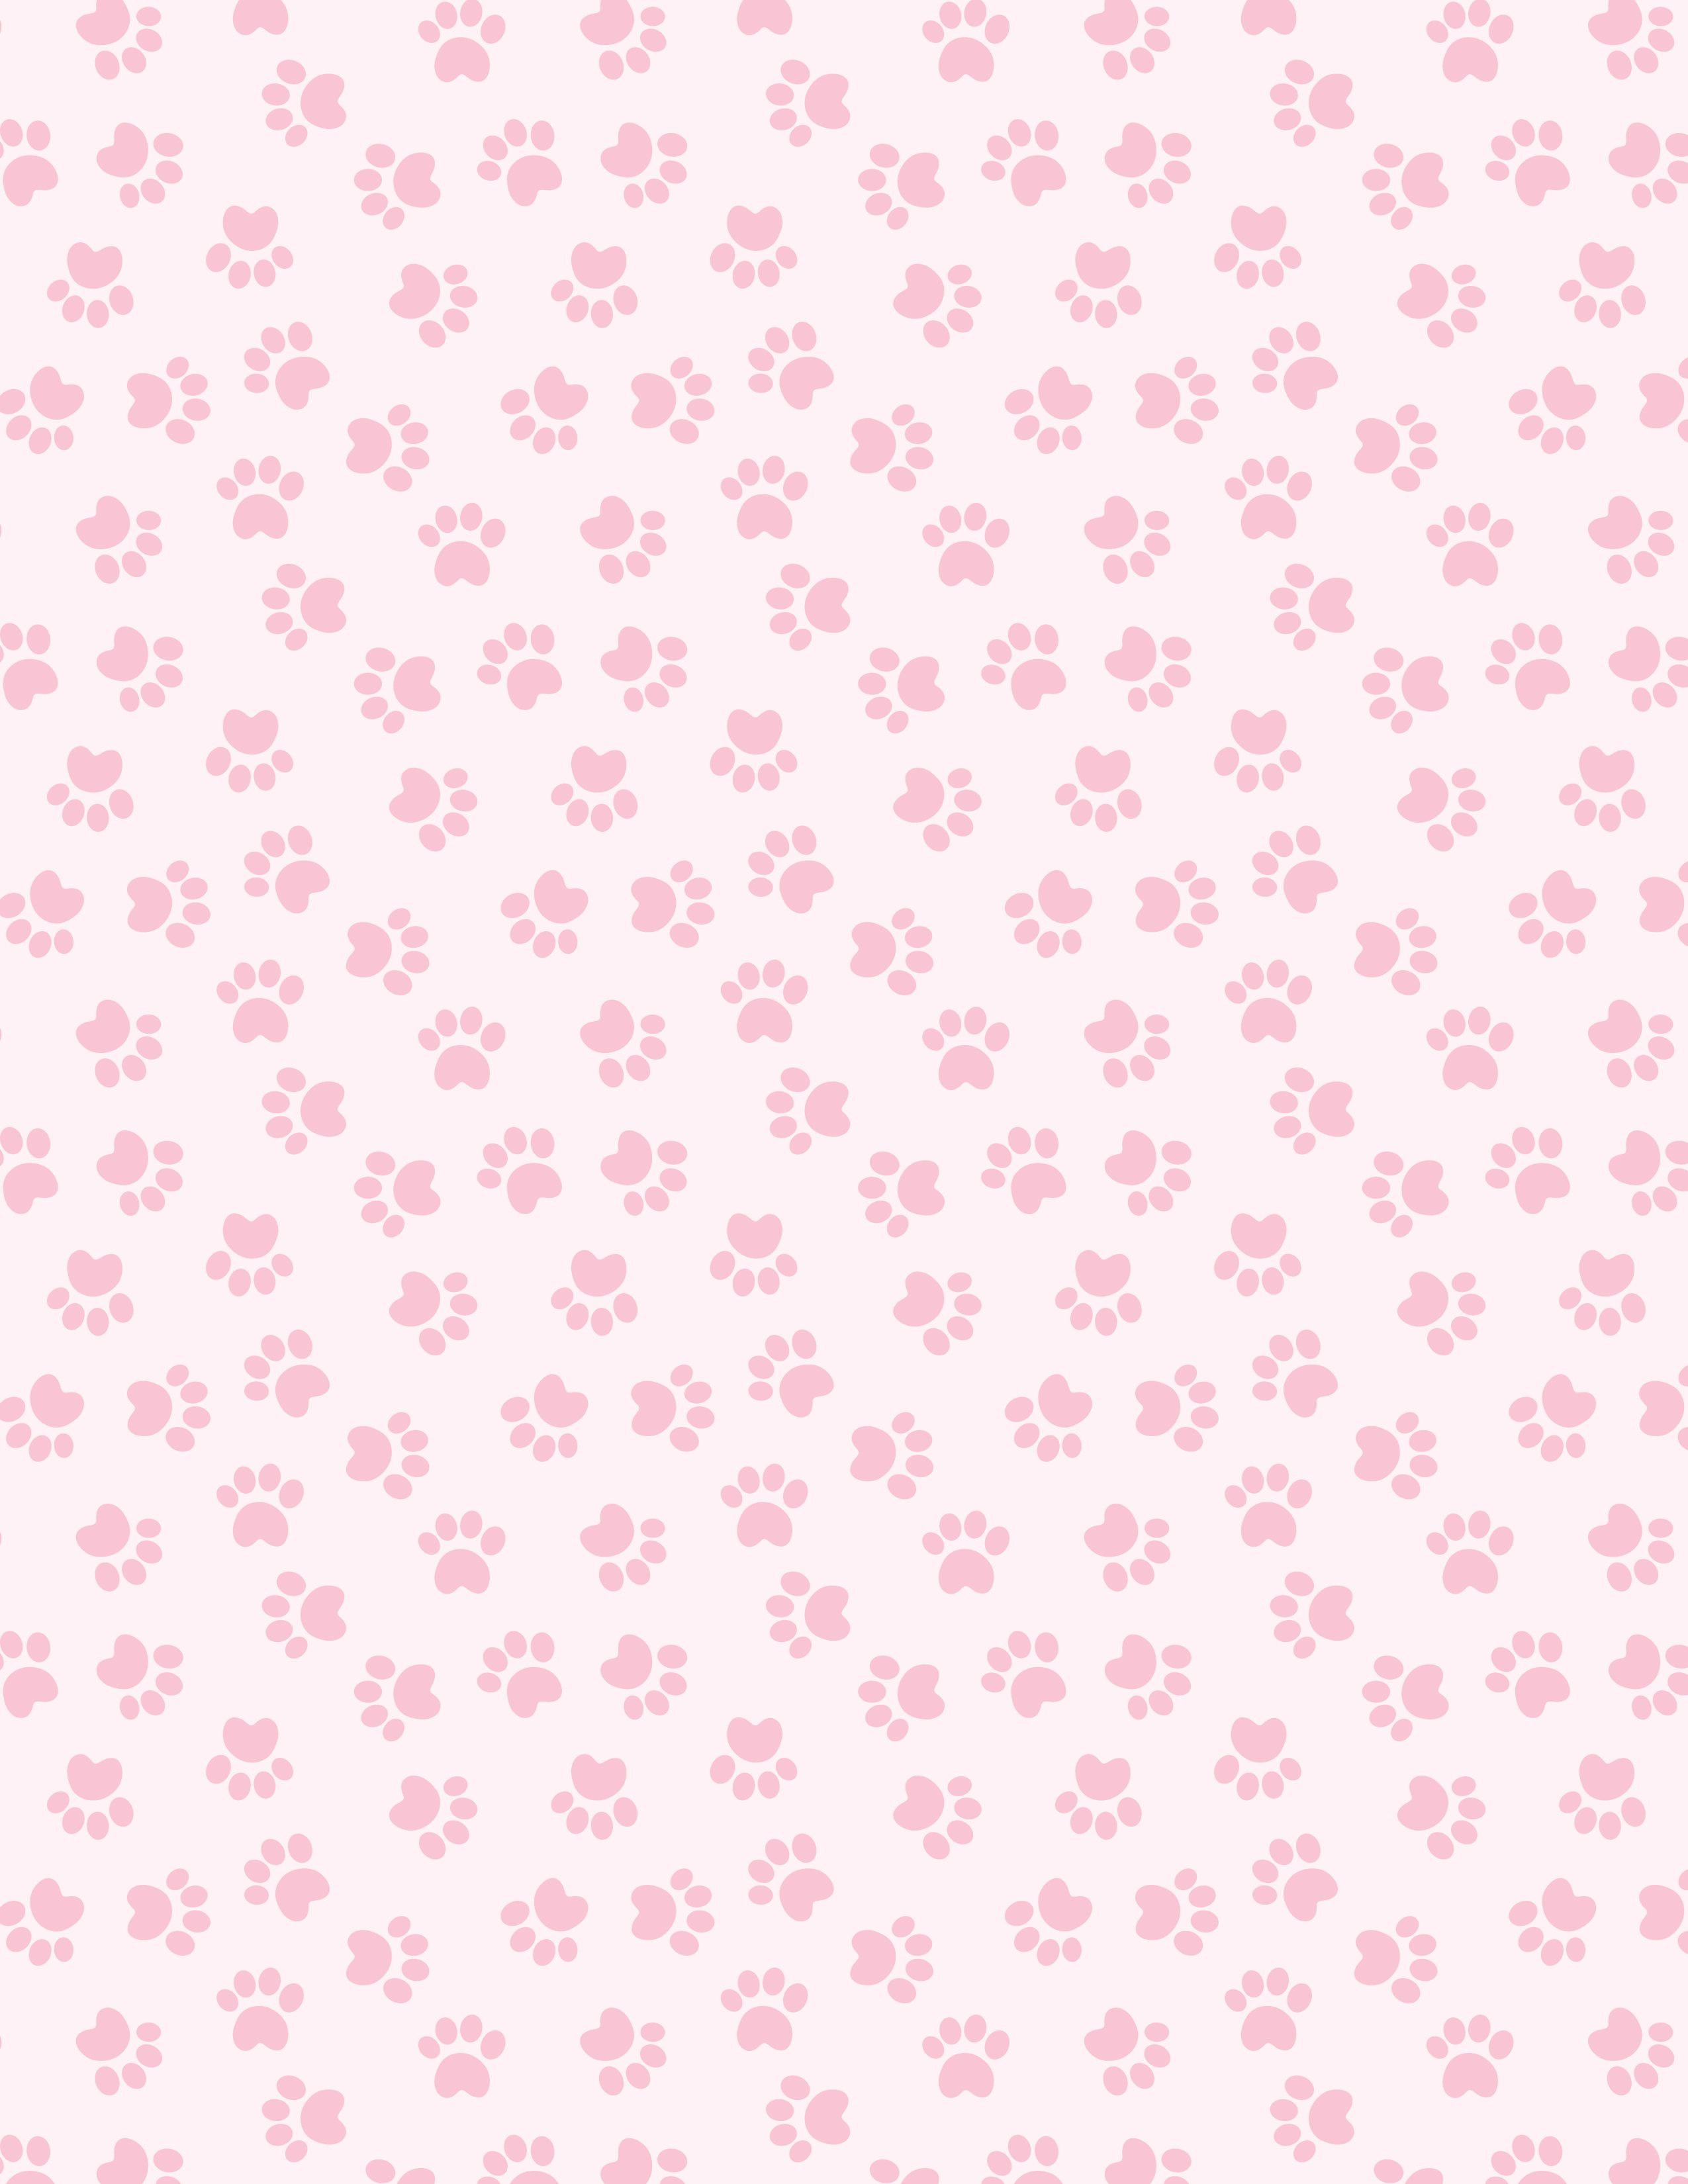 Pale Pink Paw Print Paper Pattern Might Work For Animals Besides Dogs And Cats